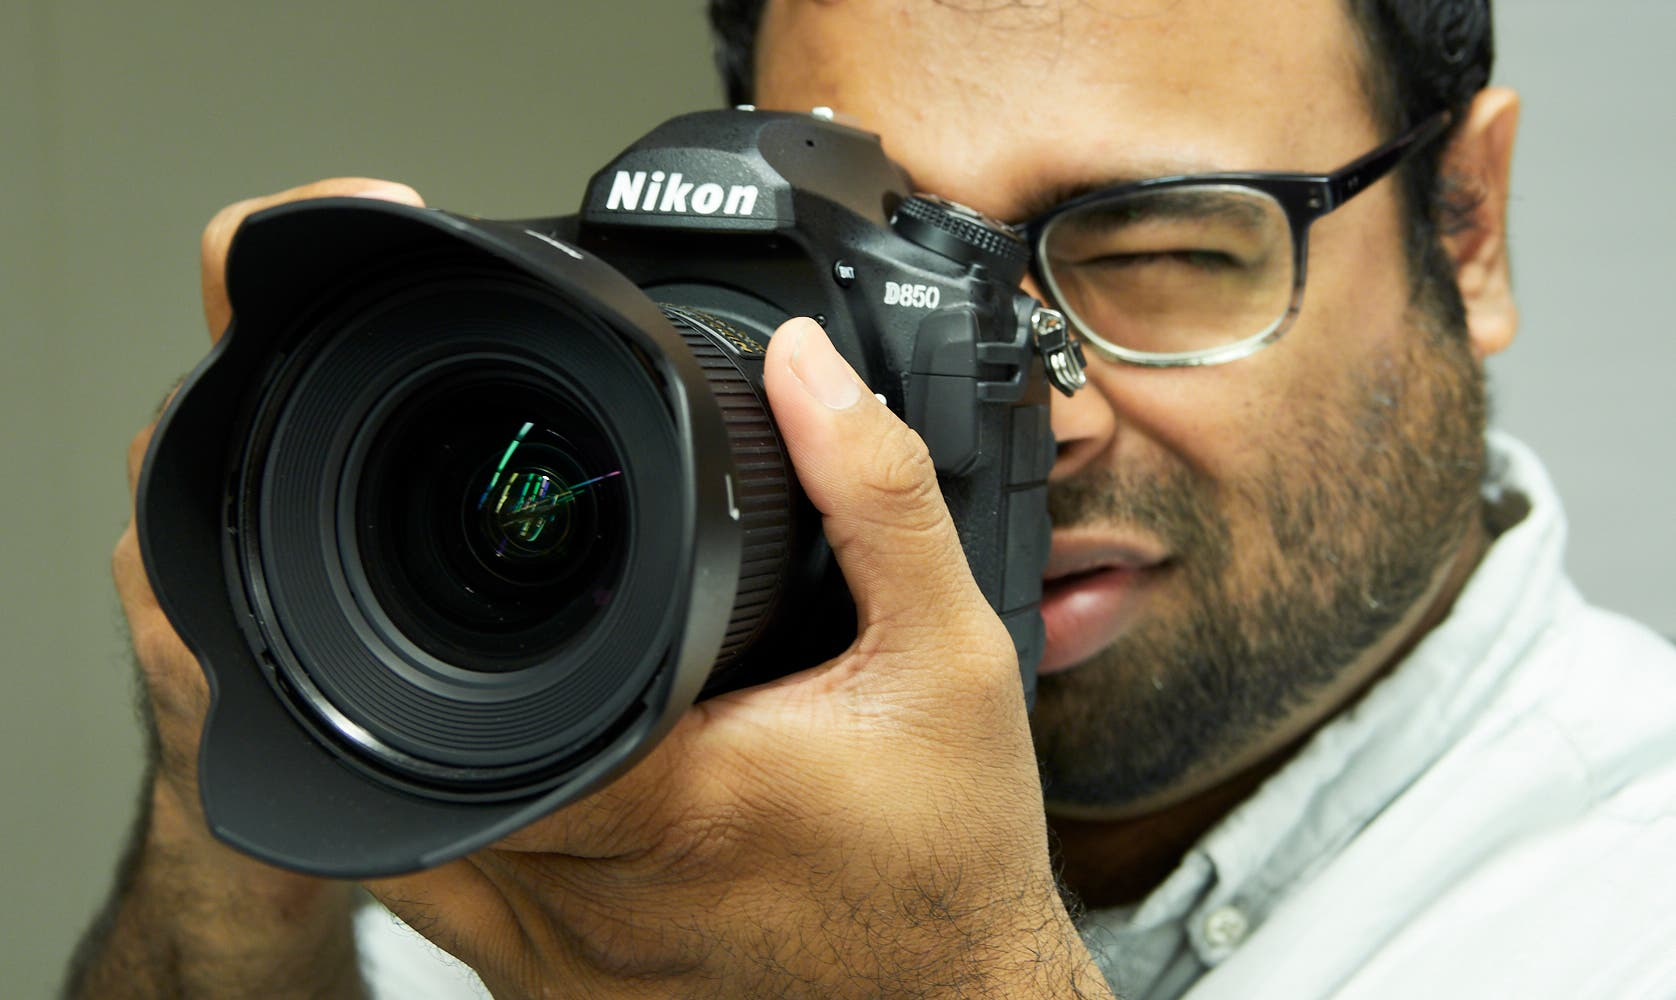 Got the New Nikon D850? Here Are Nikon's Recommended Lenses